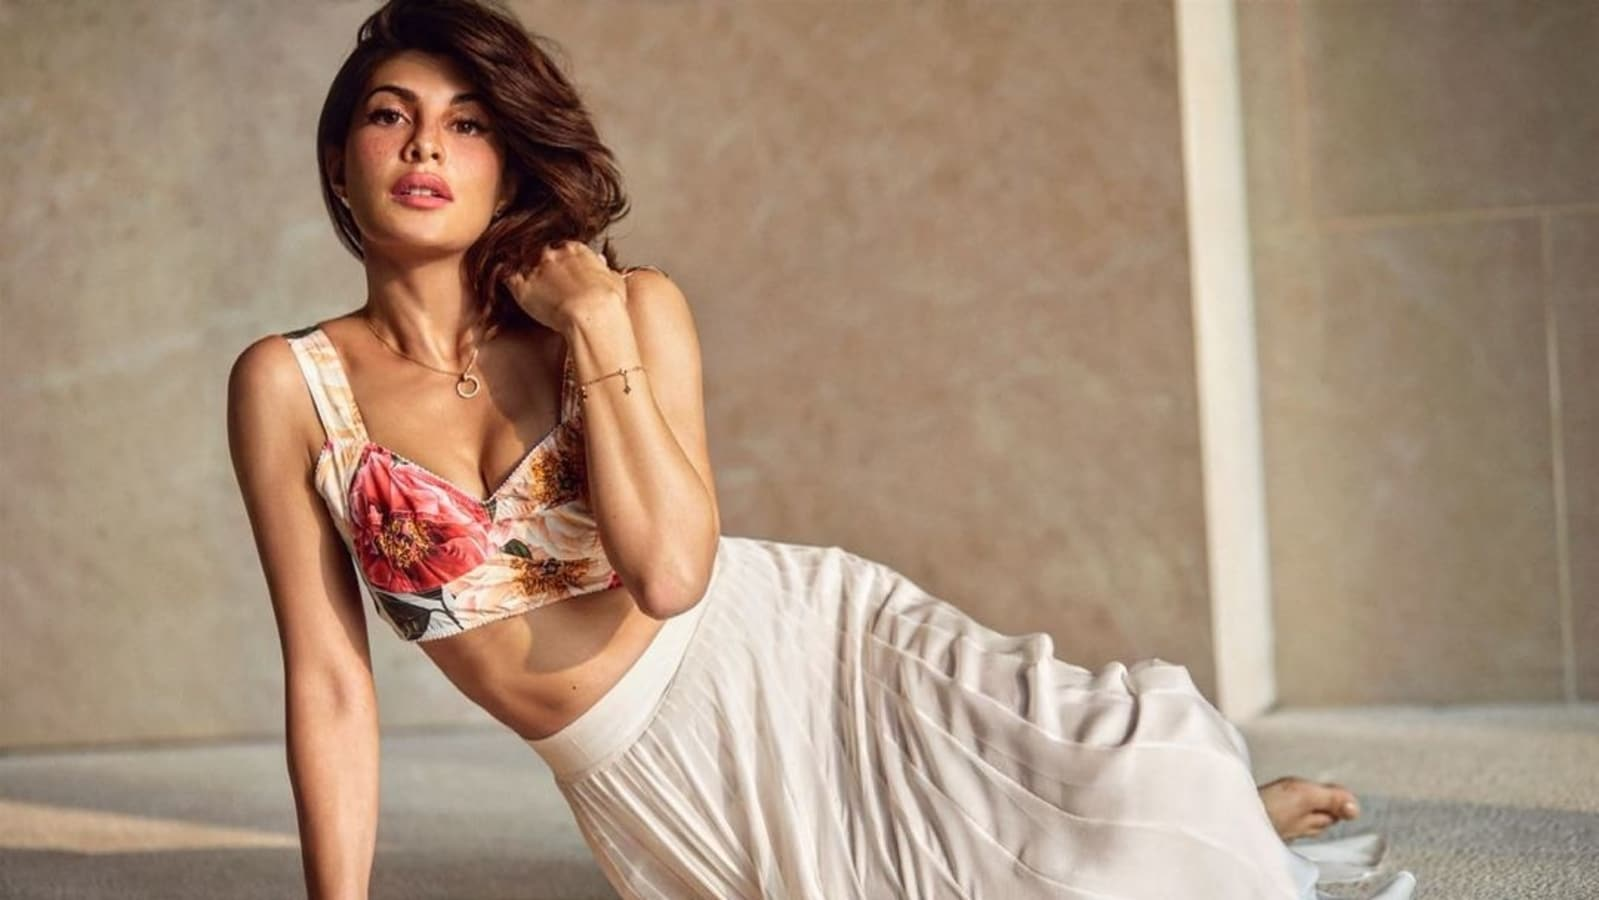 Beloved Jacqueline Fernandez's floral bustier in new video? Here is what it prices